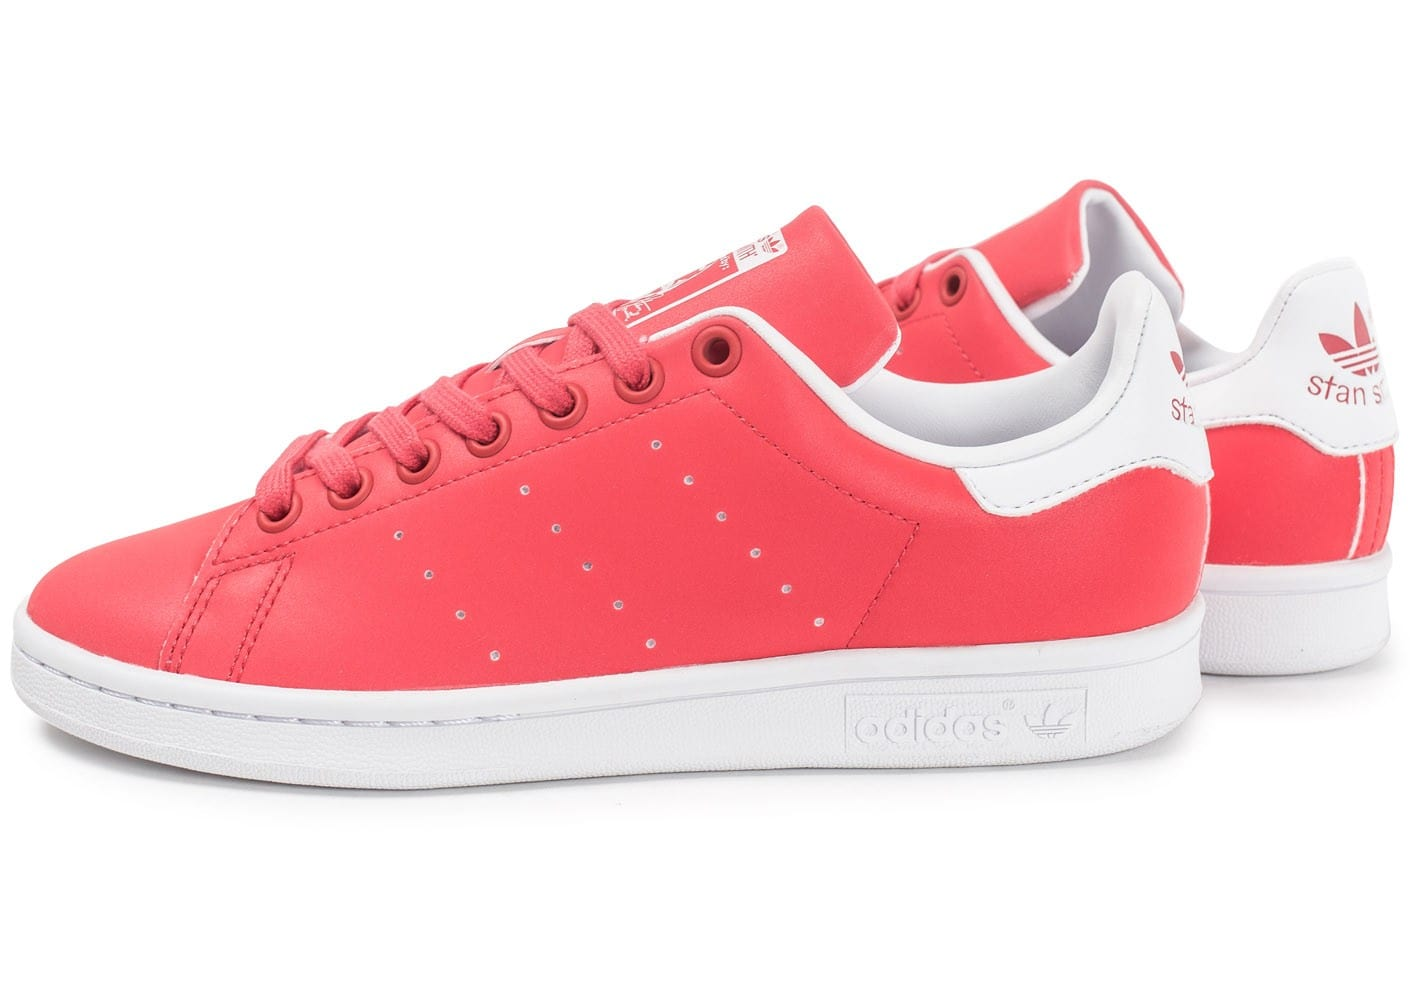 adidas Stan Smith Core pink - Chaussures adidas - Chausport